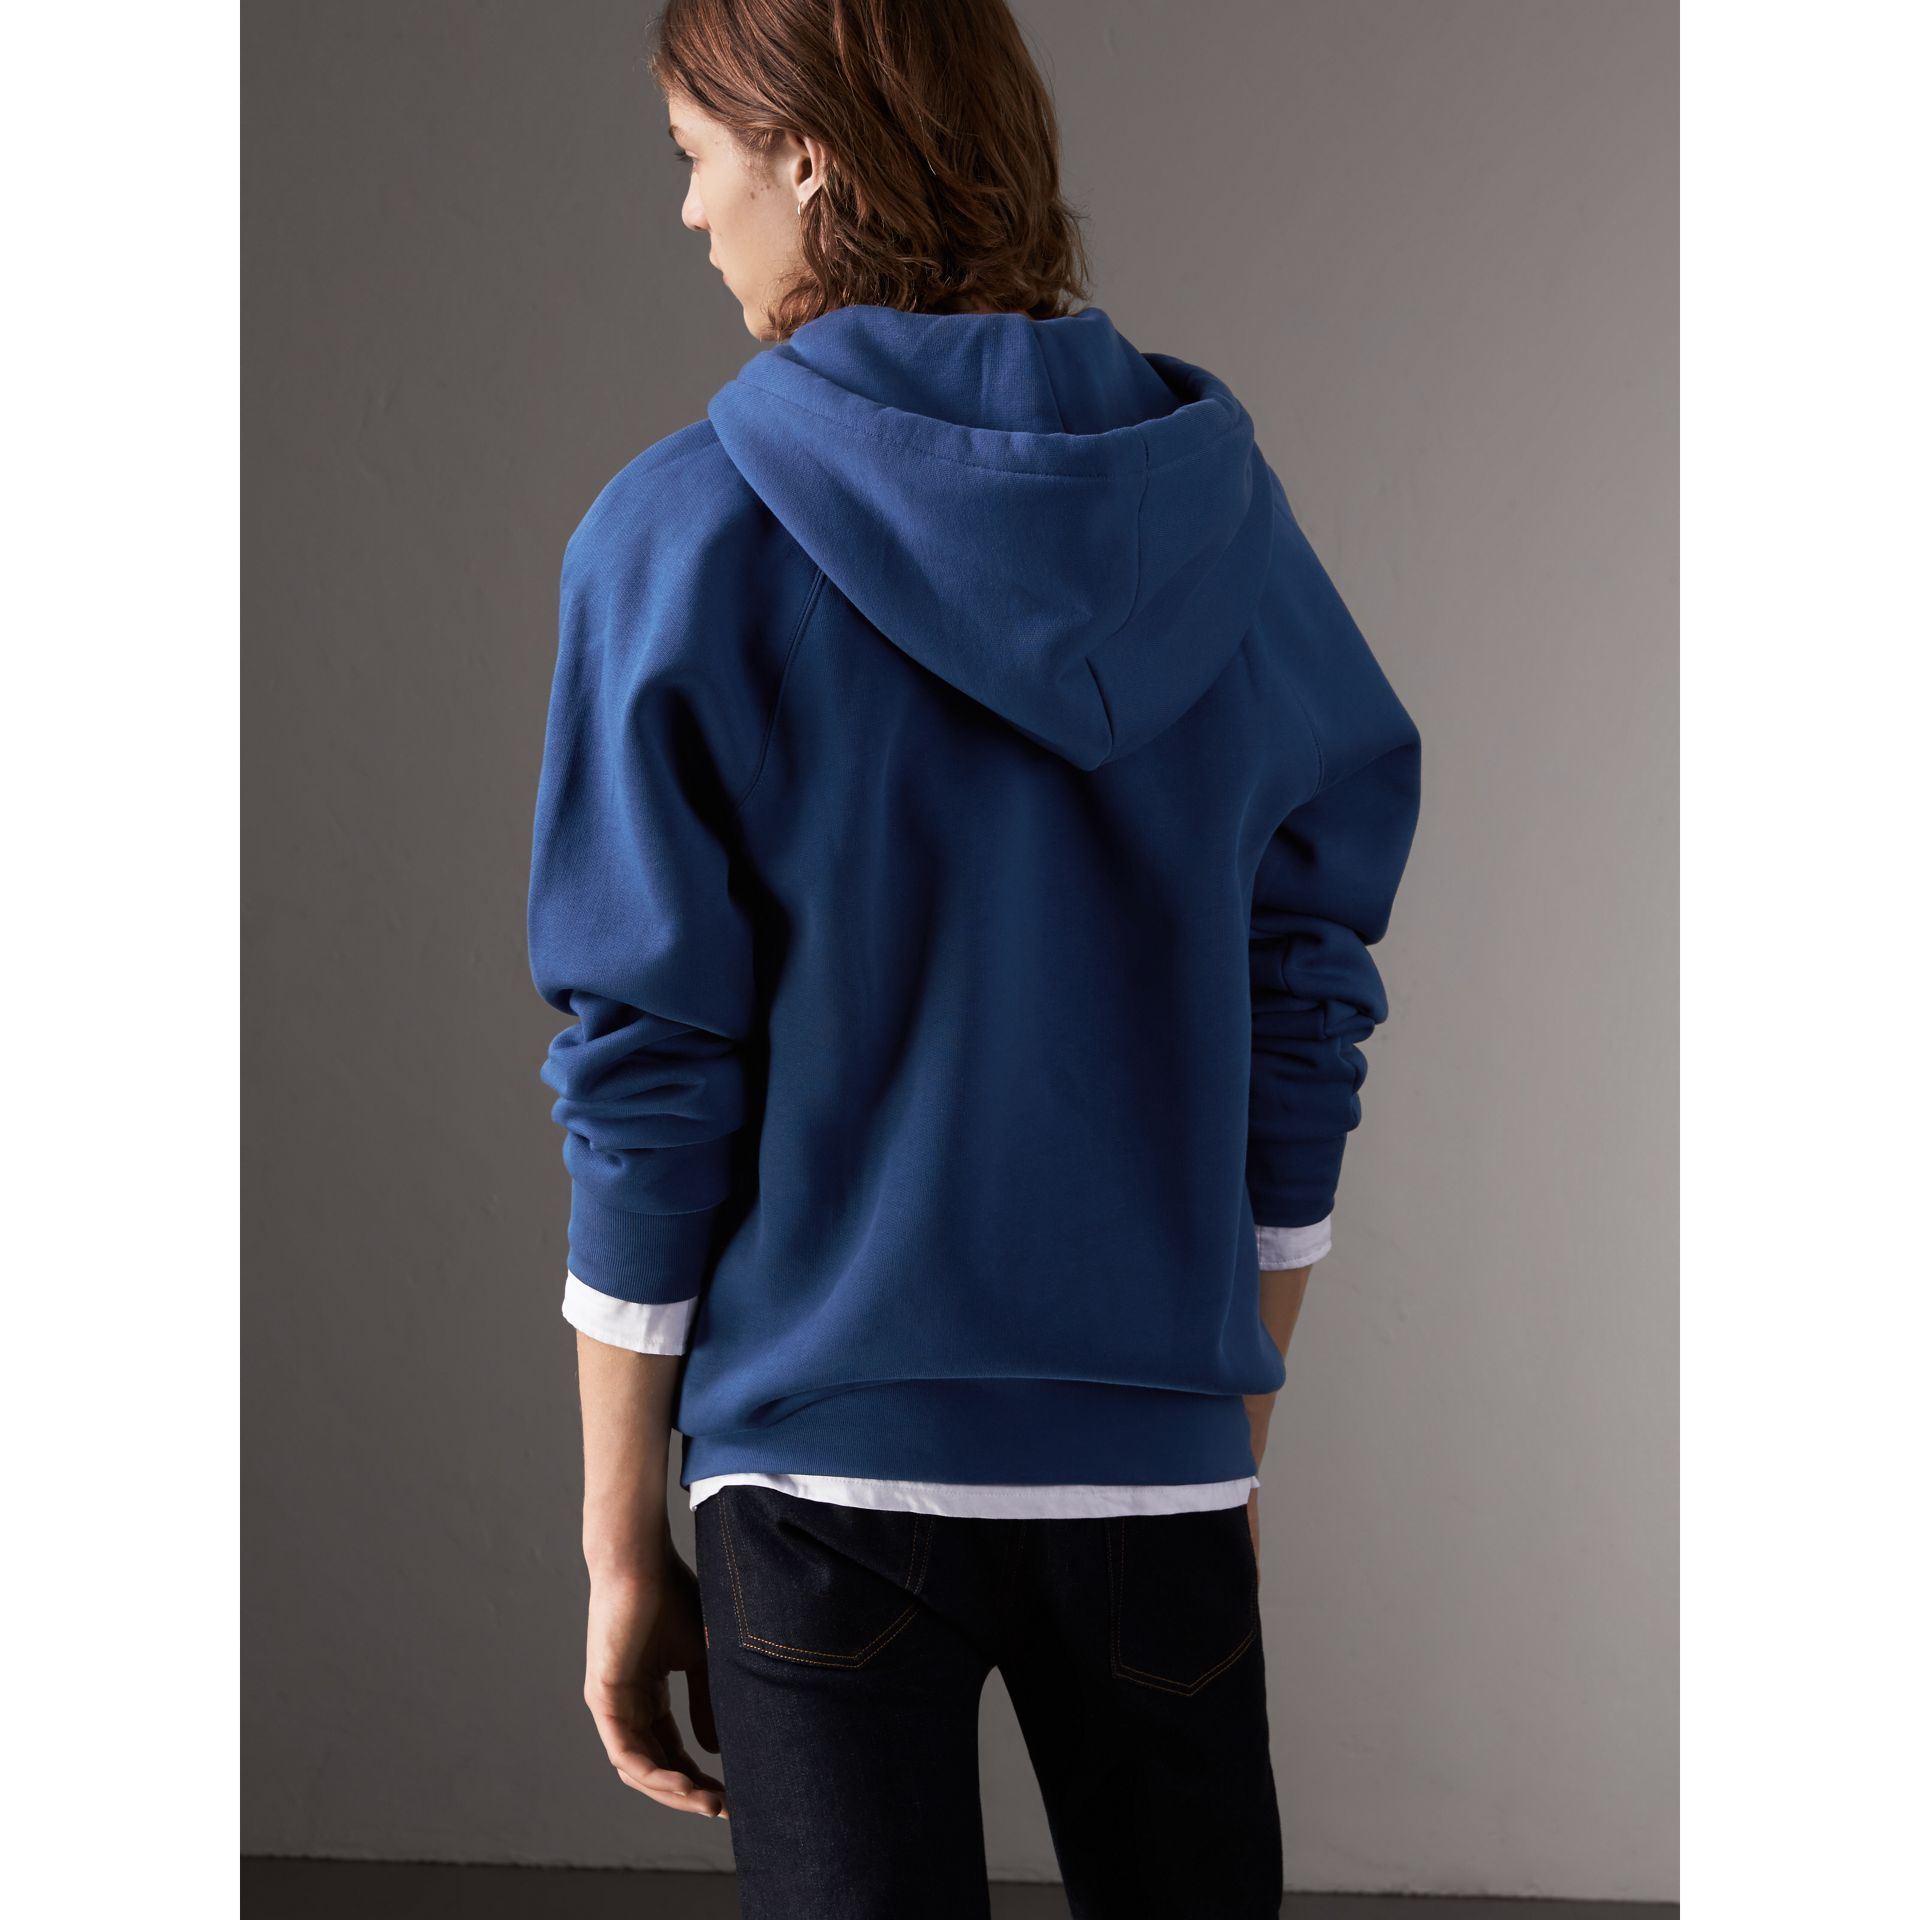 Embroidered Hooded Sweatshirt in Bright Blue - Men | Burberry Hong Kong - gallery image 2